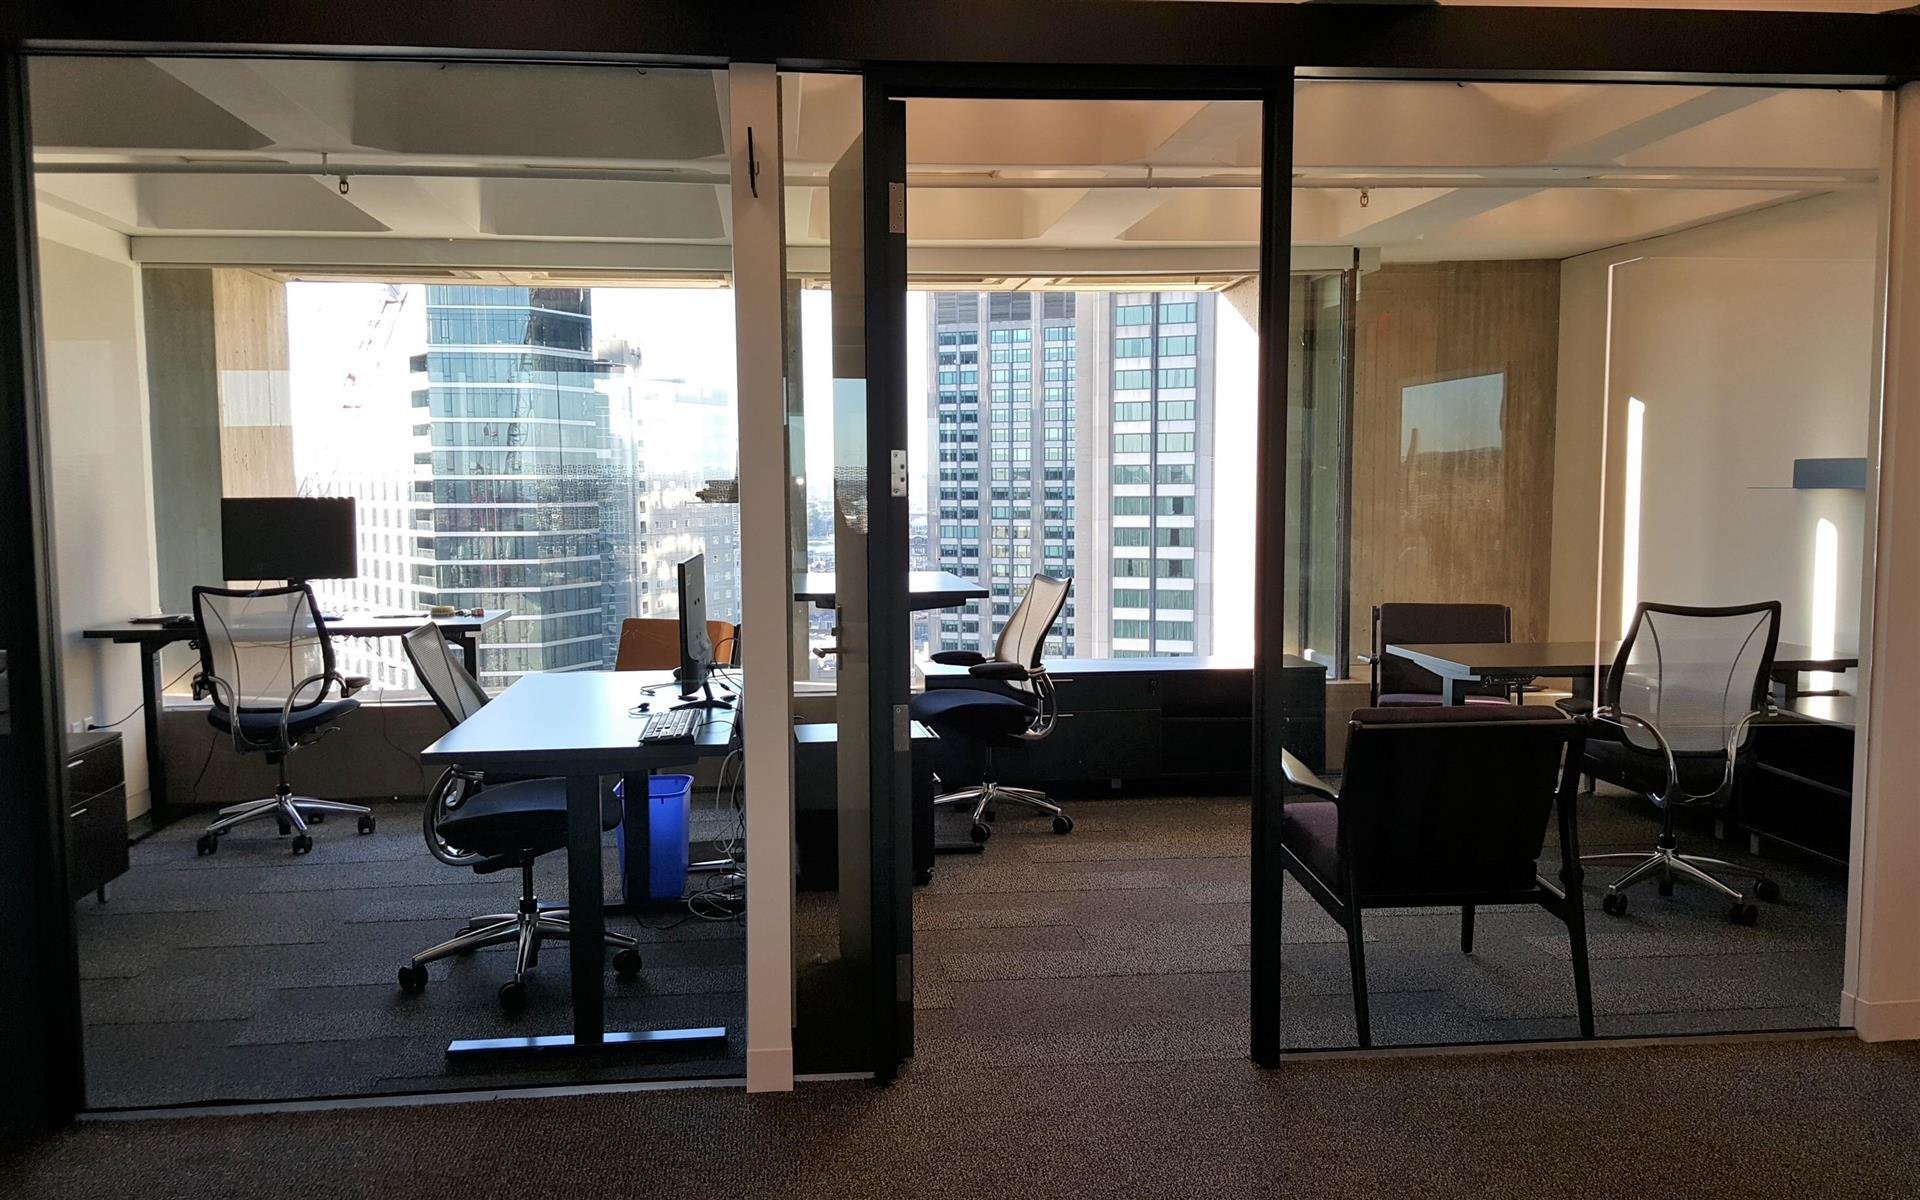 Business District - Office Suite for 3 with Stunning Views